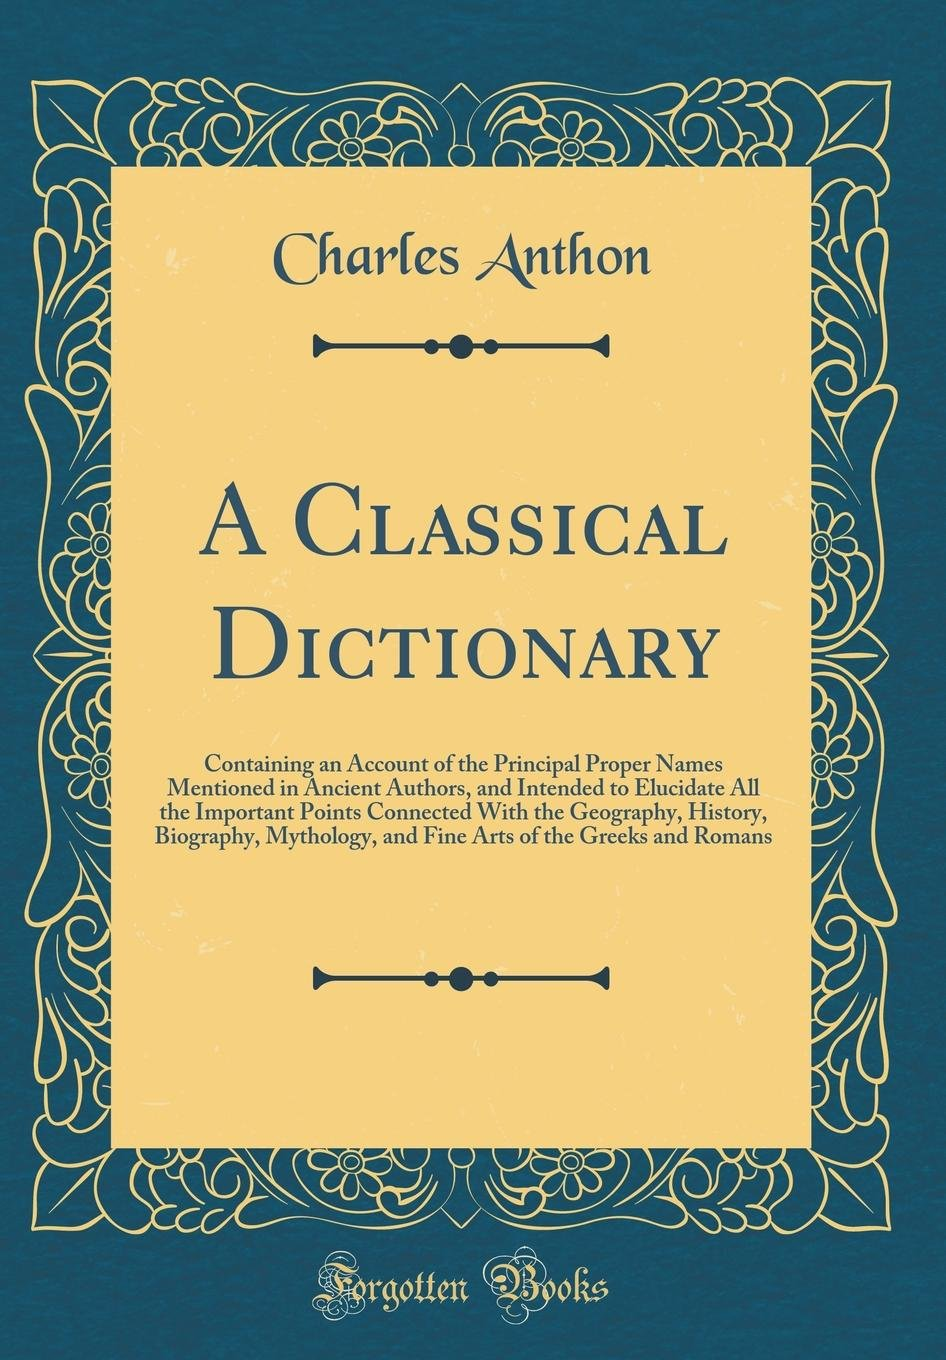 Download A Classical Dictionary: Containing an Account of the Principal Proper Names Mentioned in Ancient Authors, and Intended to Elucidate All the Important ... and Fine Arts of the Greeks and Roman PDF